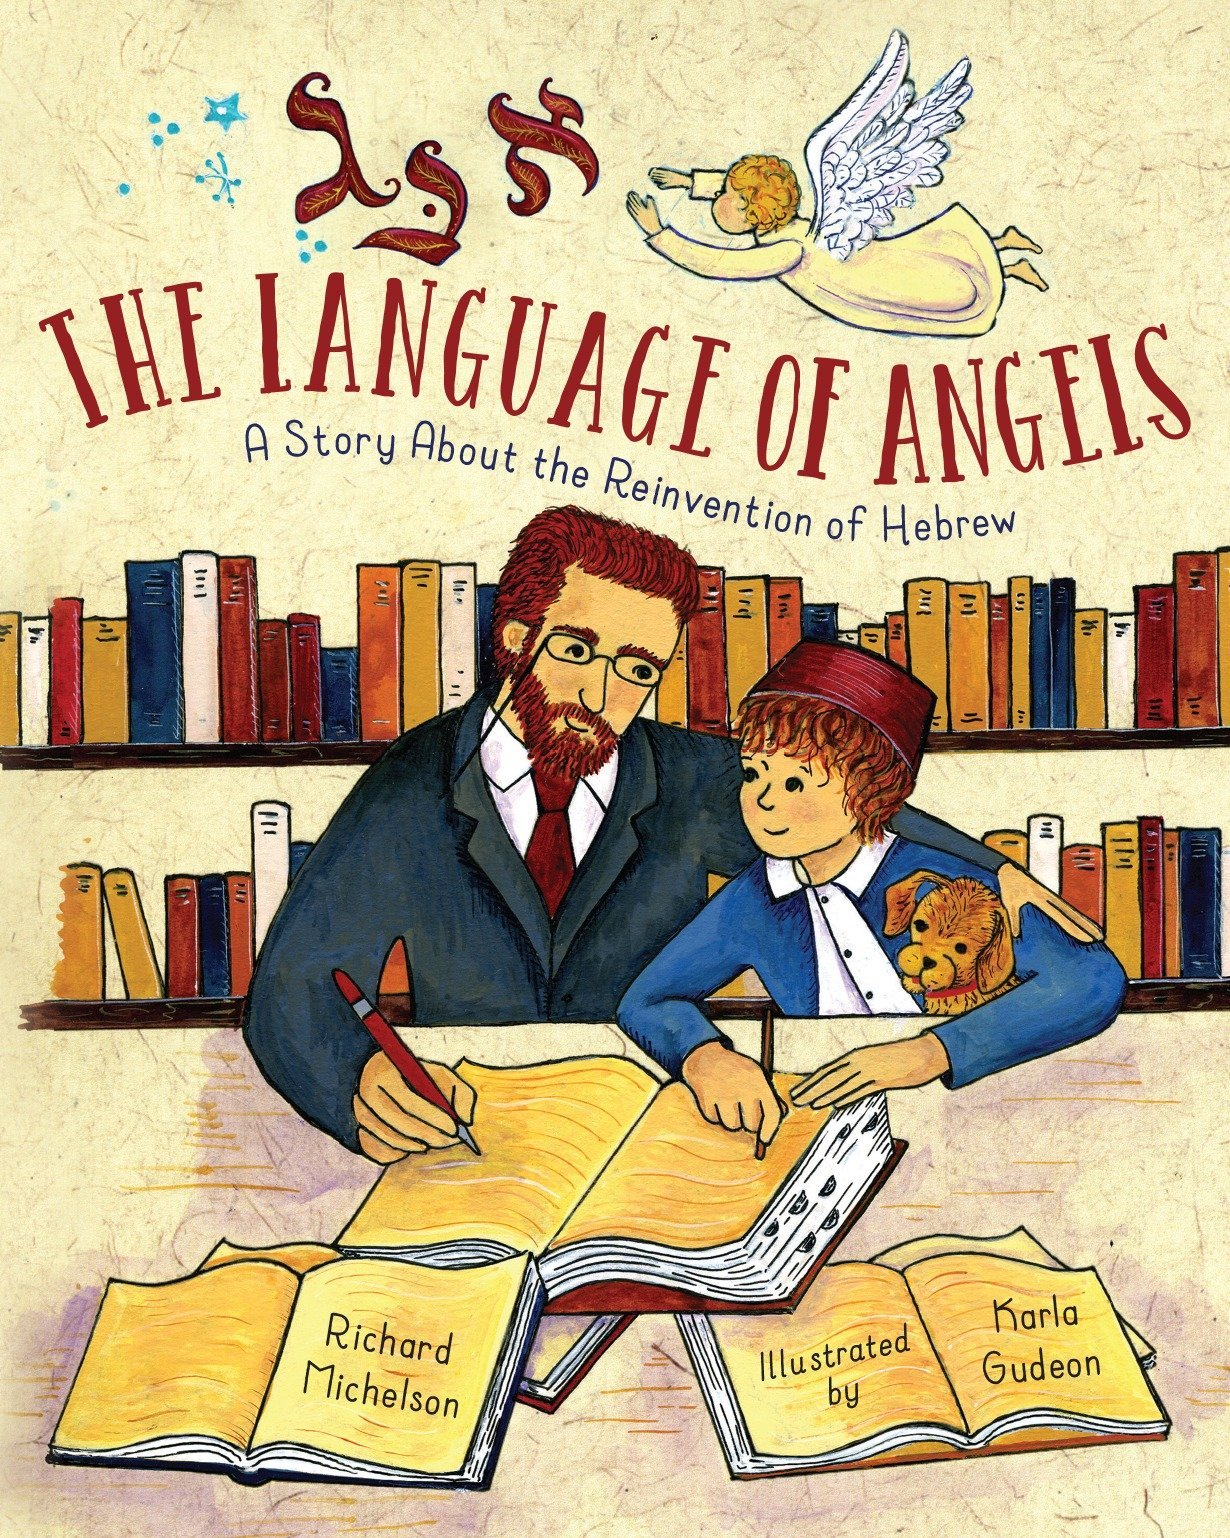 The Language of Angels: A Story About the Reinvention of Hebrew by Charlesbridge Publishing